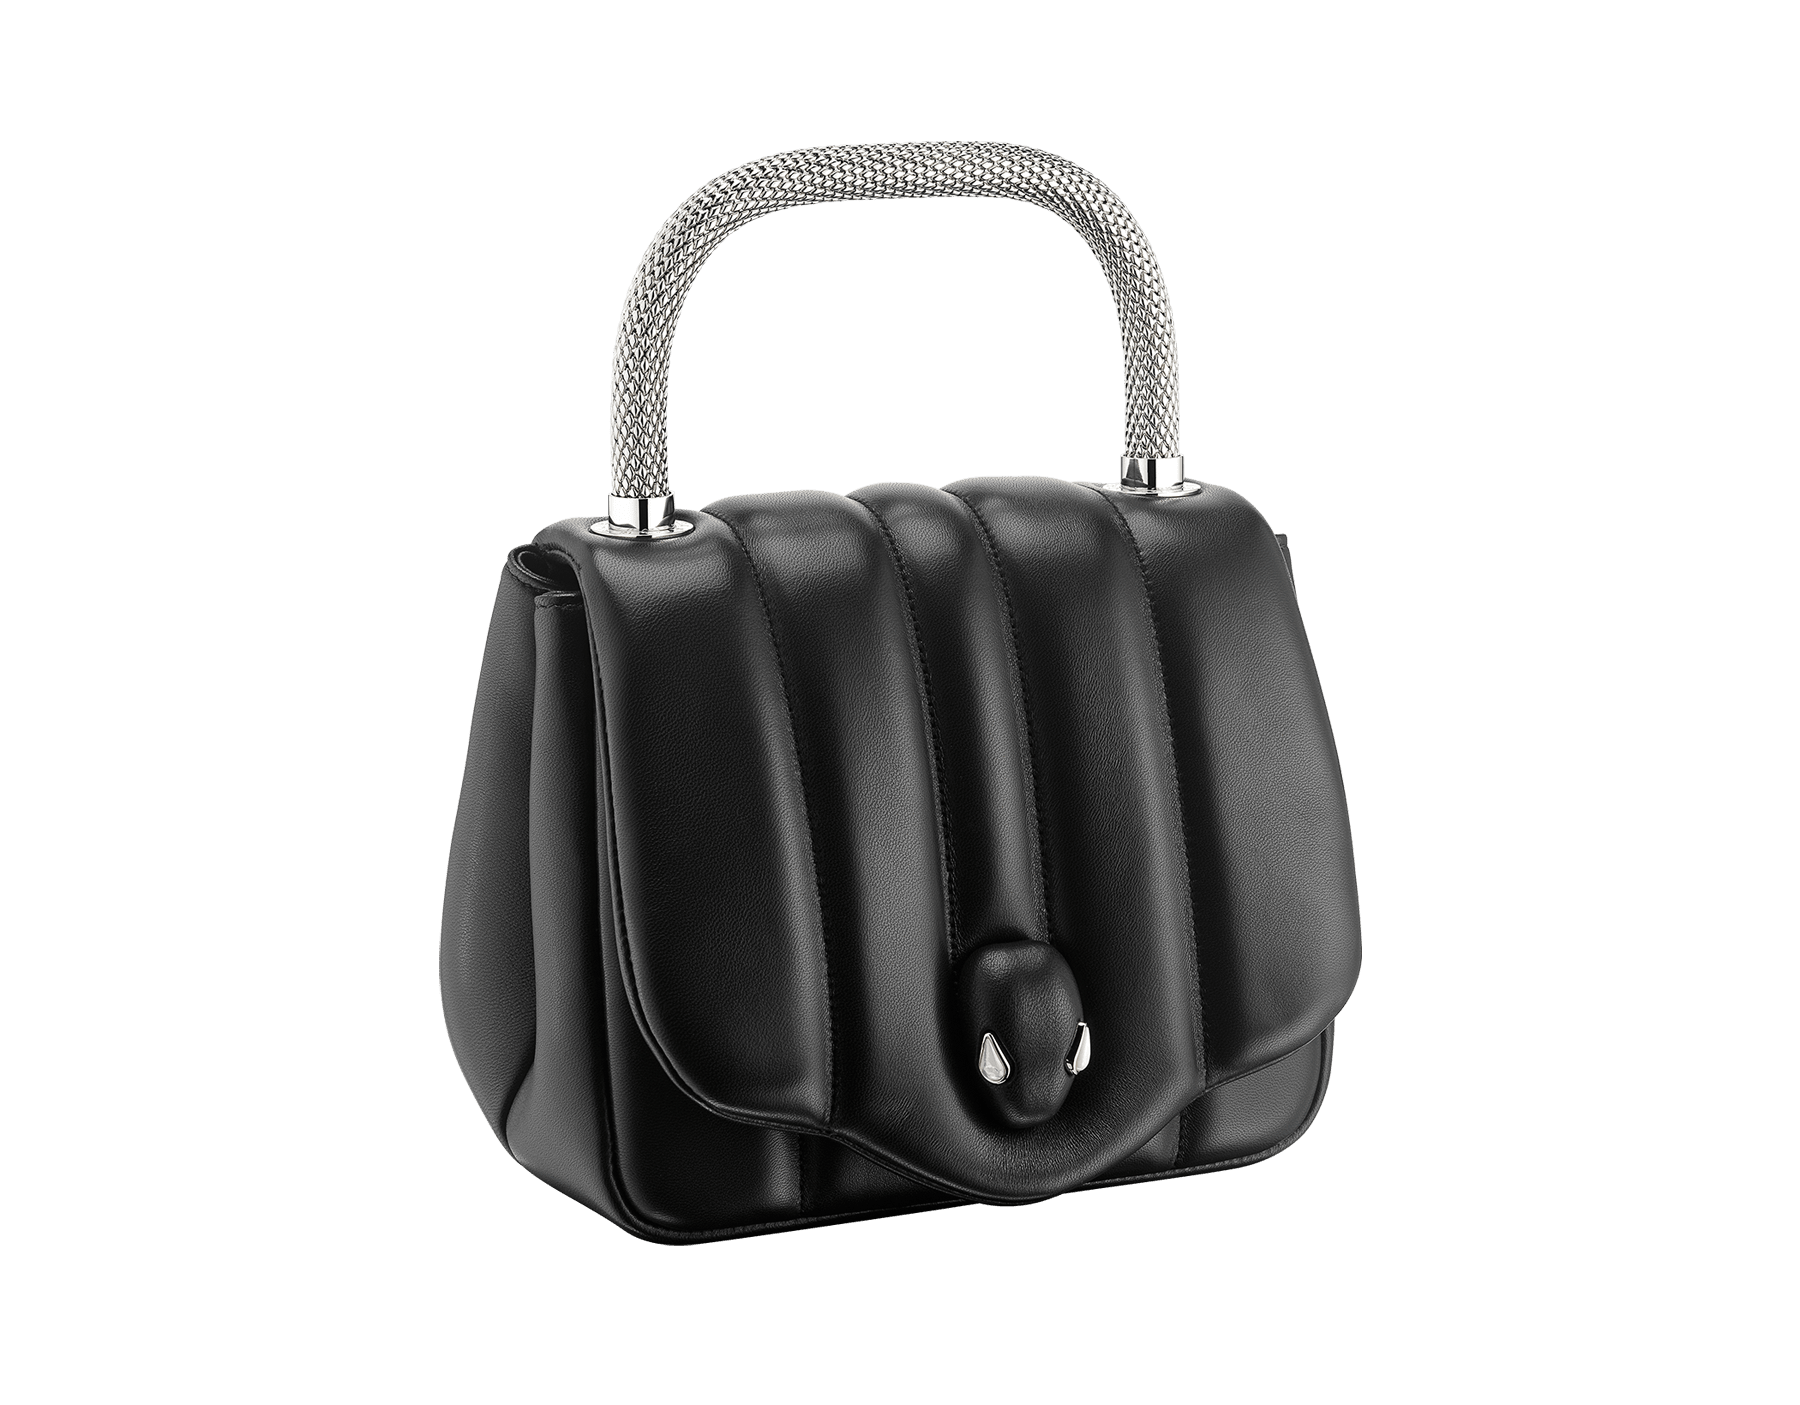 """Ambush x Bvlgari"" top handle bag in black nappa leather. New Serpenti head closure in palladium plated brass dressed with black nappa leather, finished with seductive mother of pearl eyes. Limited edition. 290343 image 2"